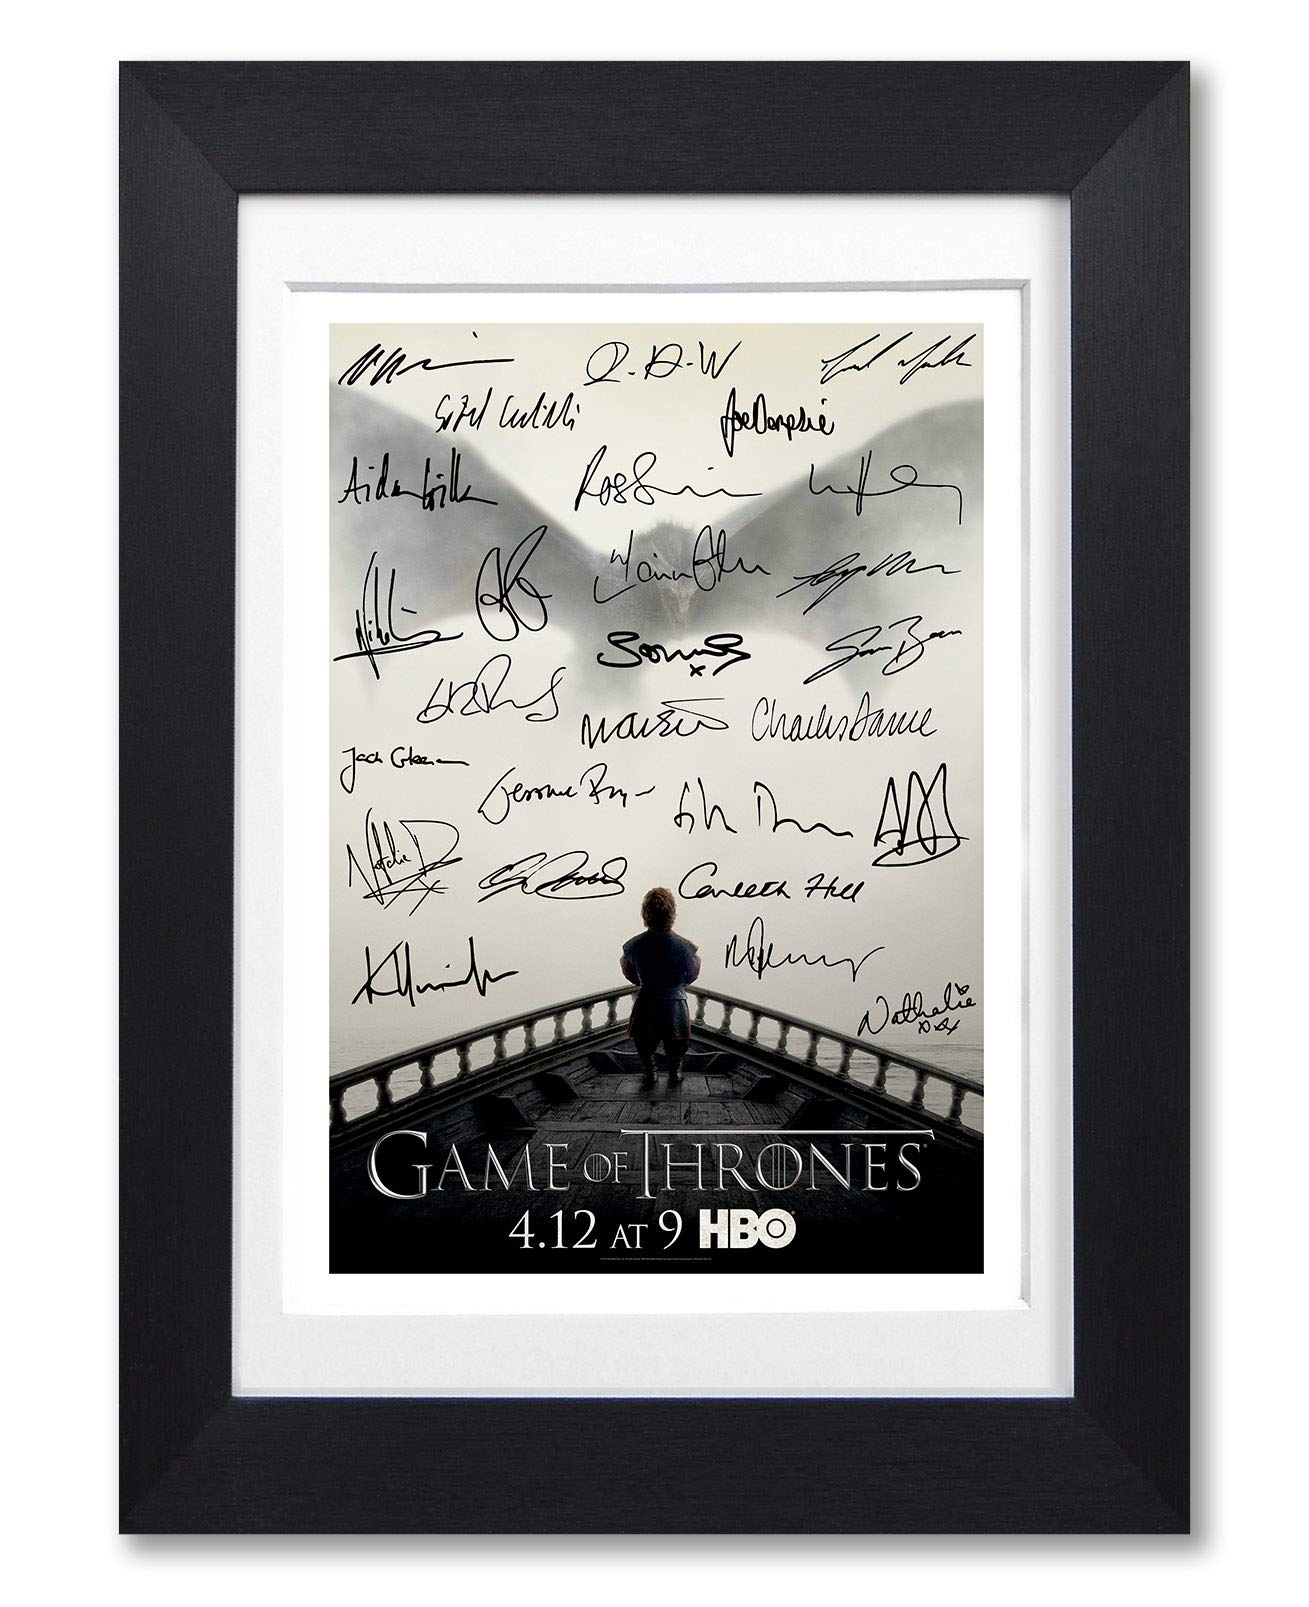 SEASON 7 CAST X 4 GAME OF THRONES SIGNED PHOTO PRINT AUTOGRAPH